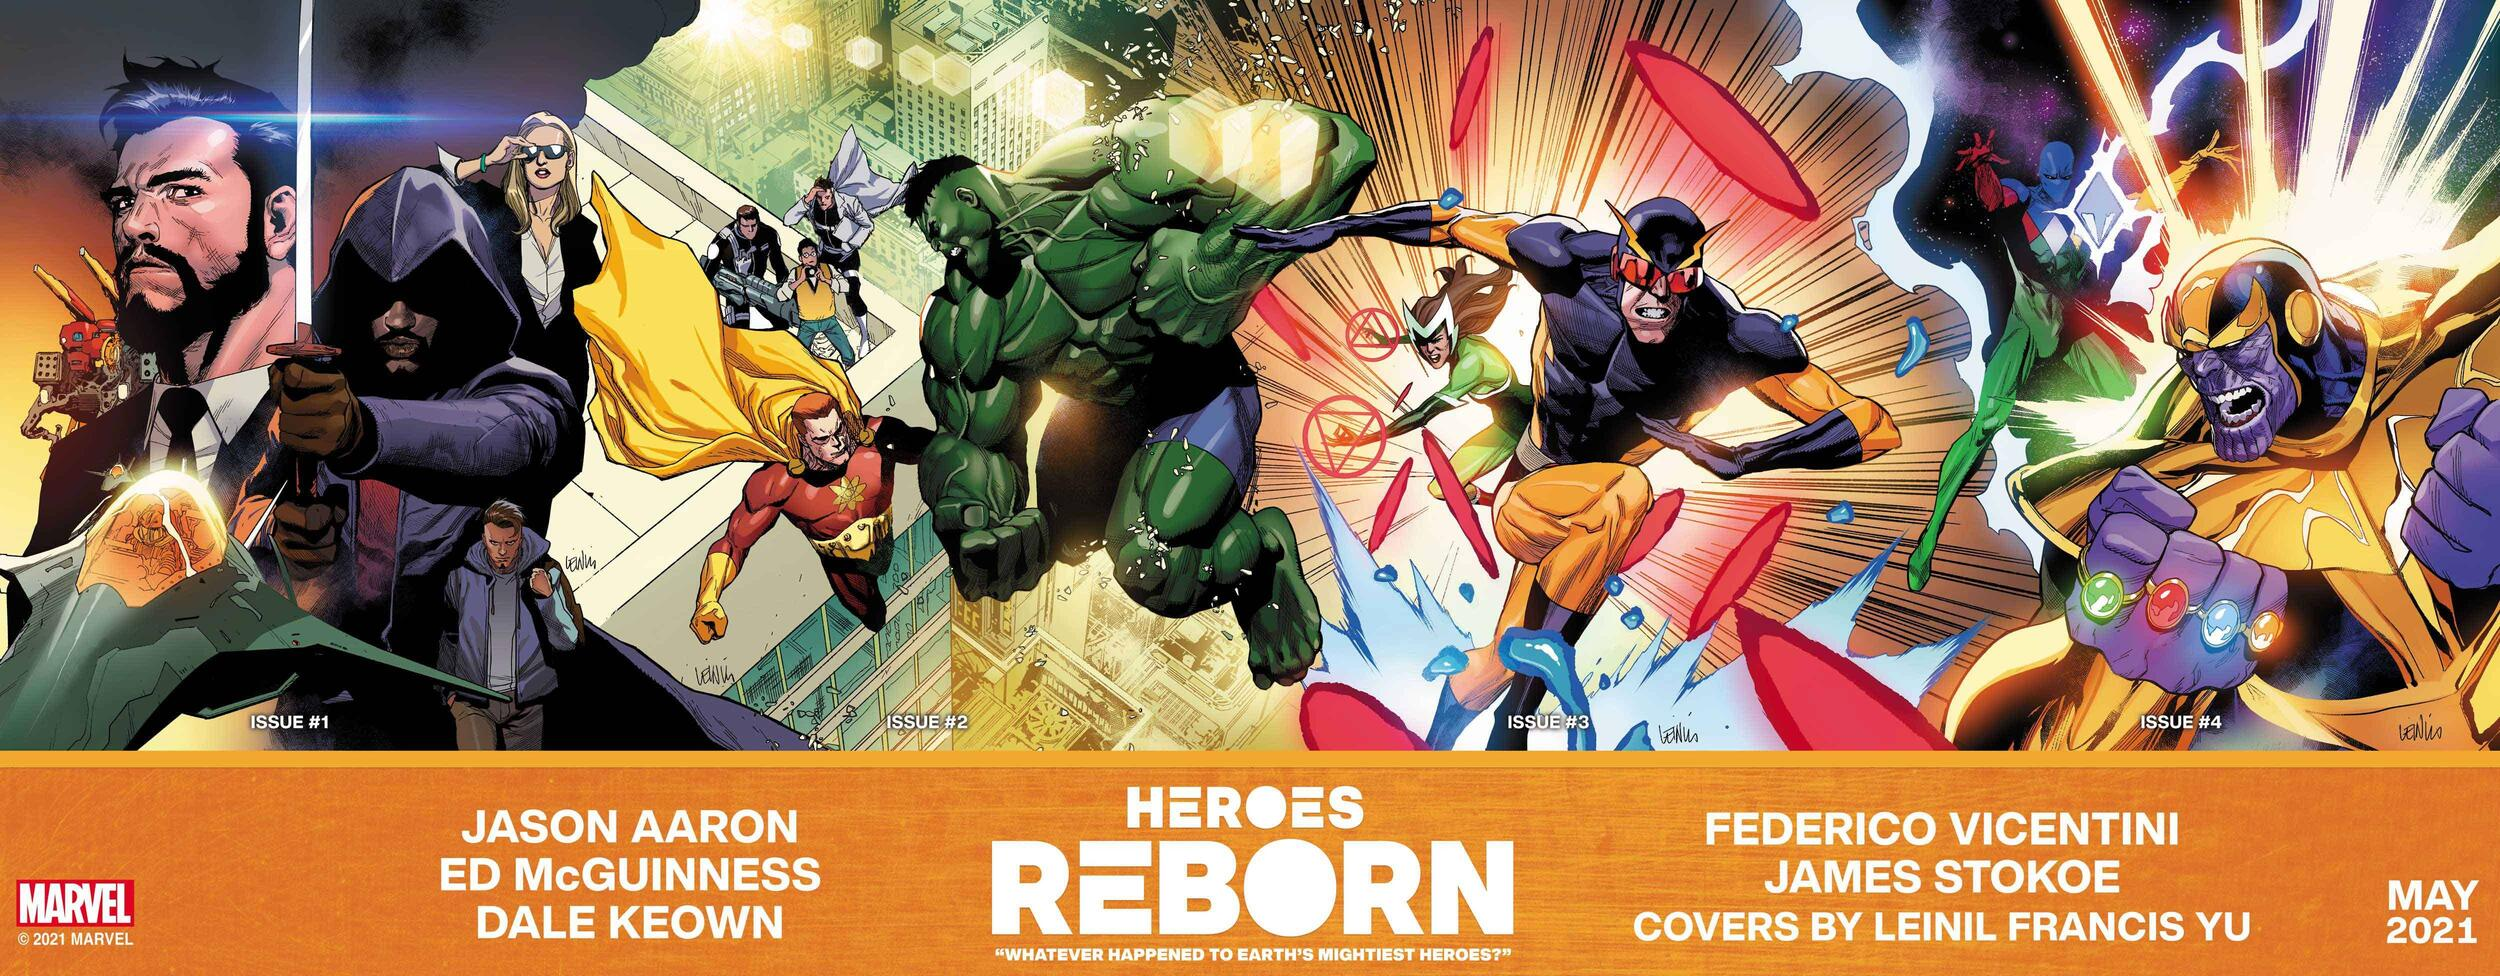 Heroes Reborn connected covers